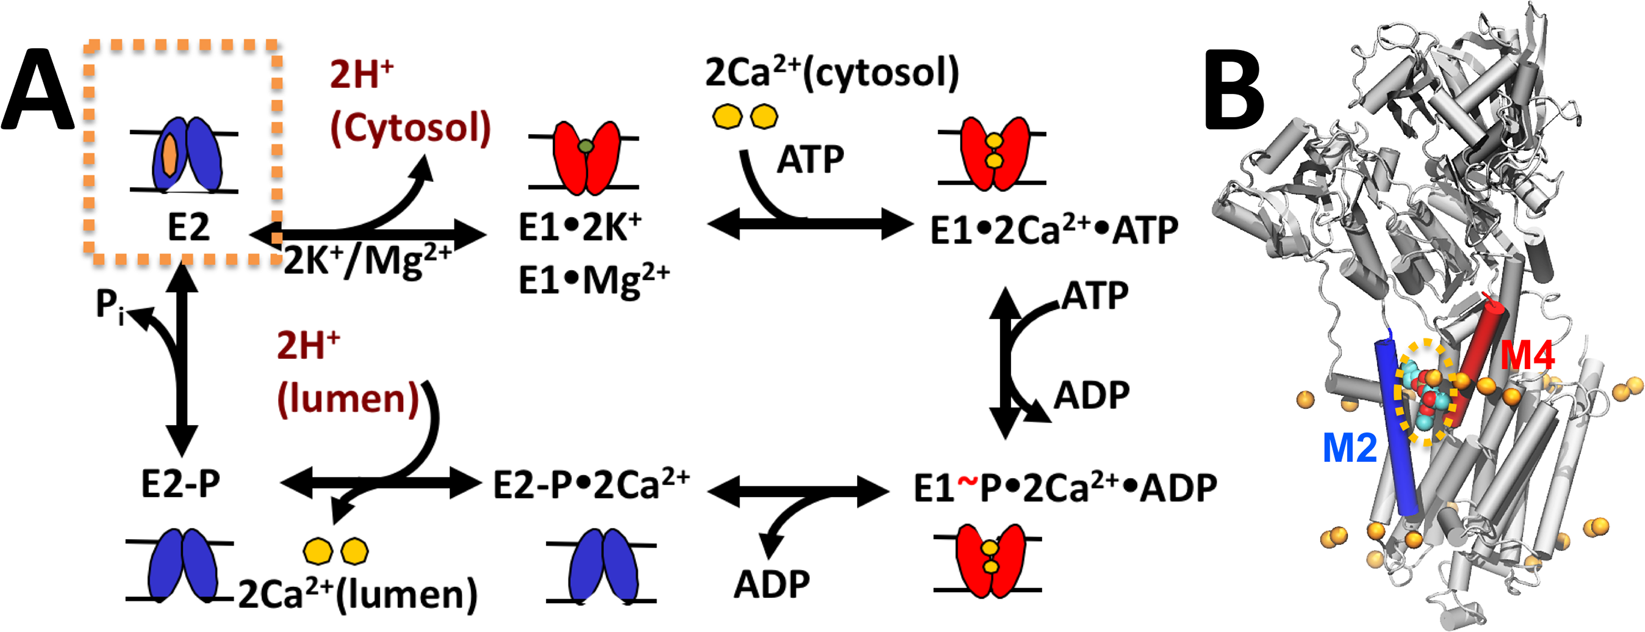 Probing the effects of nonannular lipid binding on the stability of